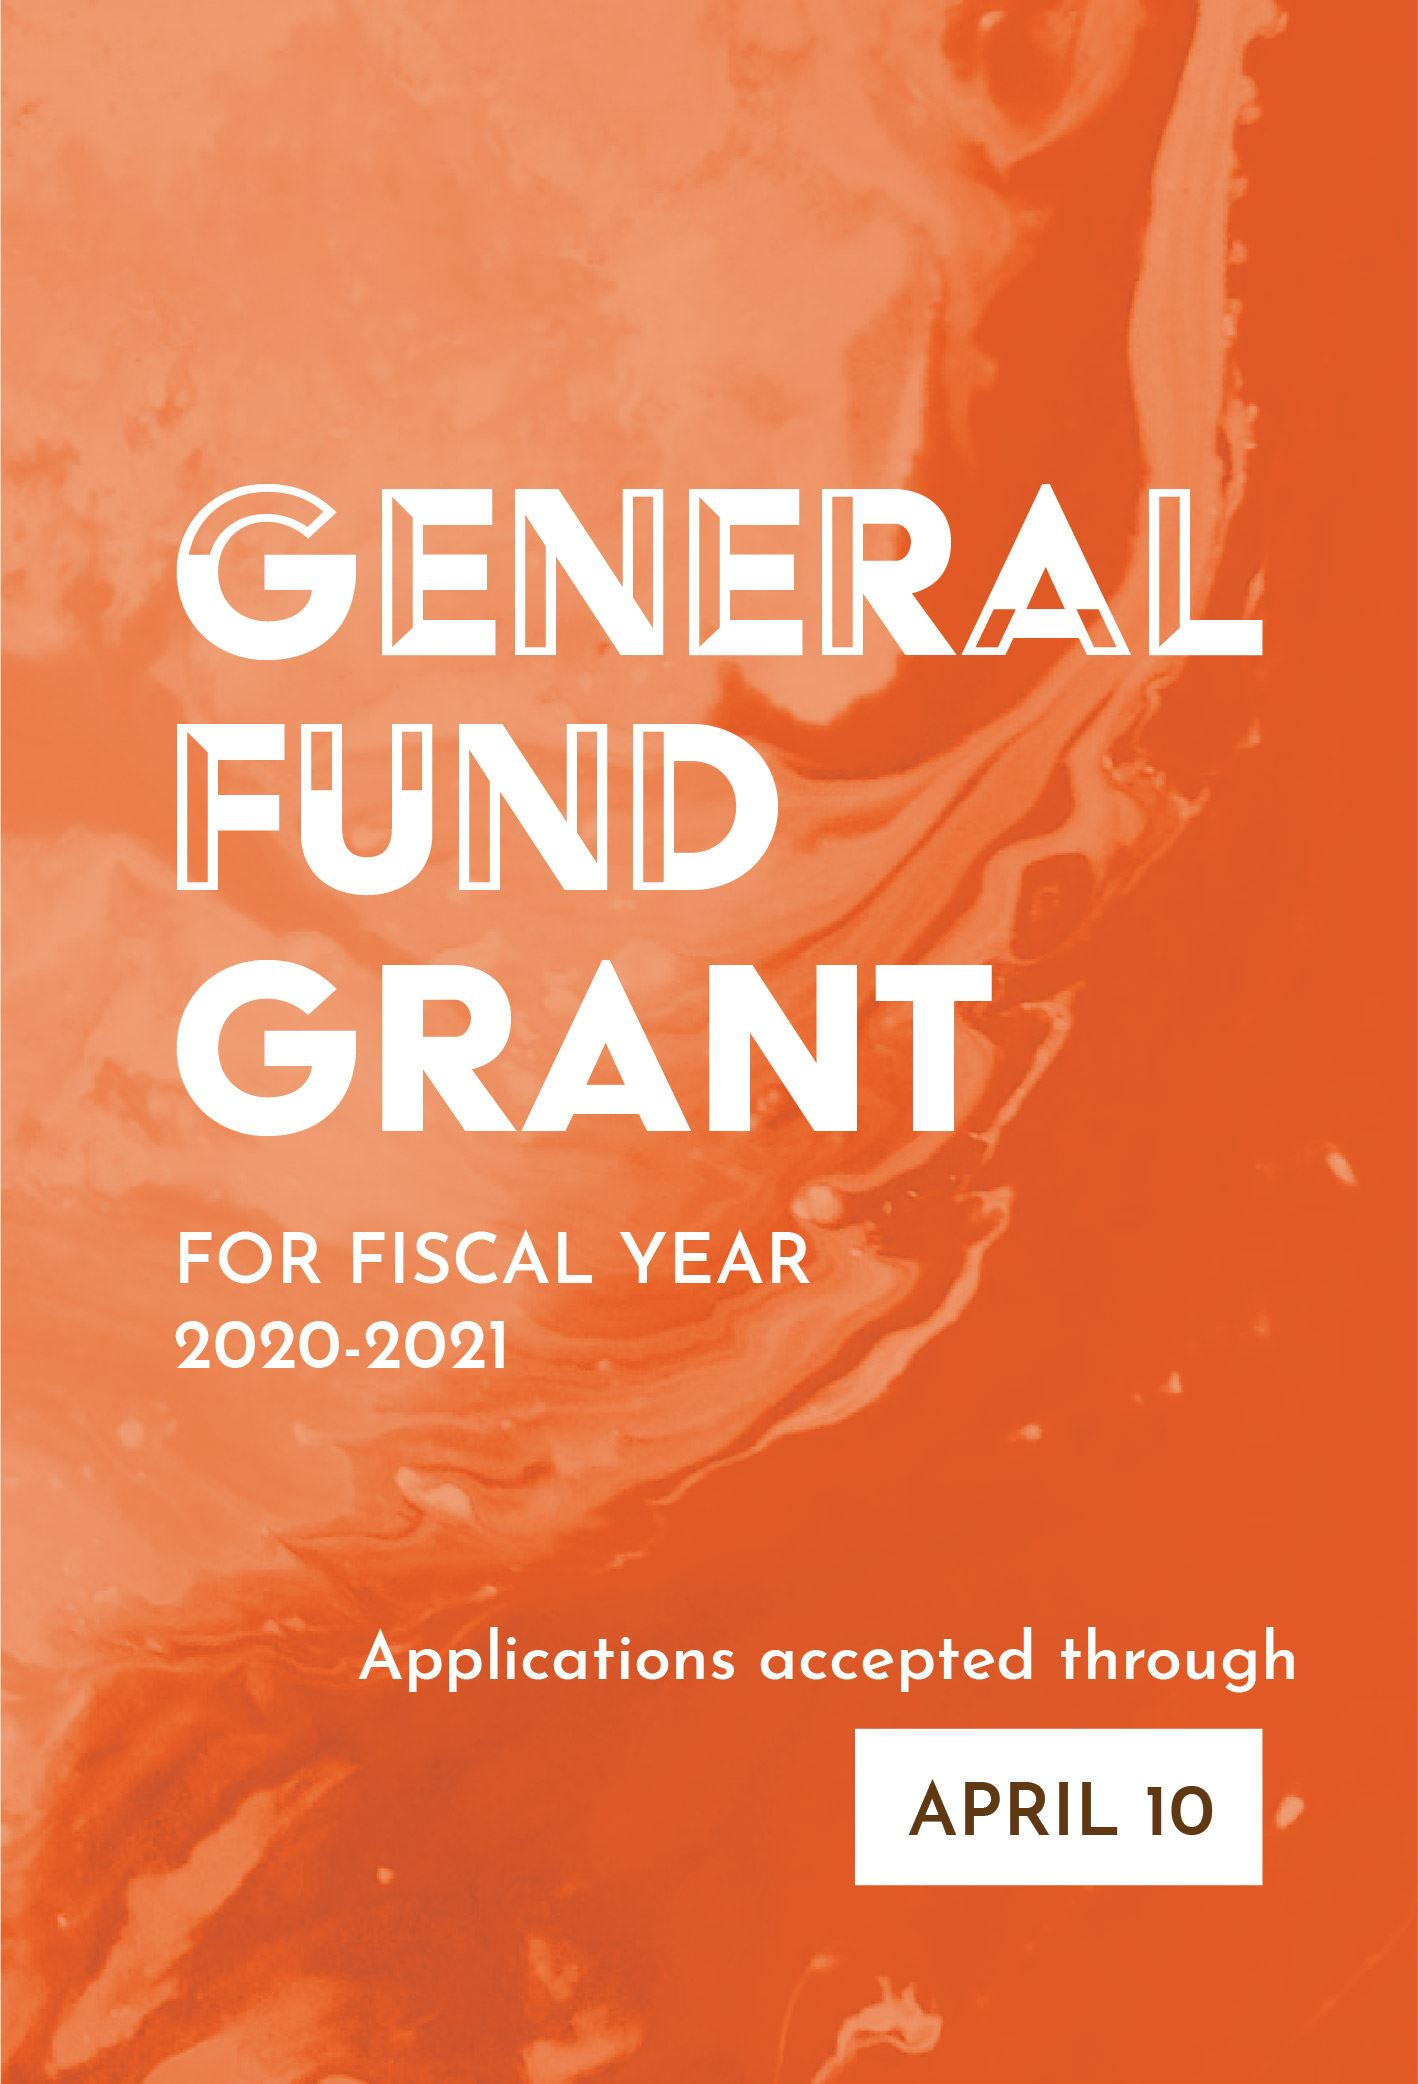 2020 General fund grant newsflash-03